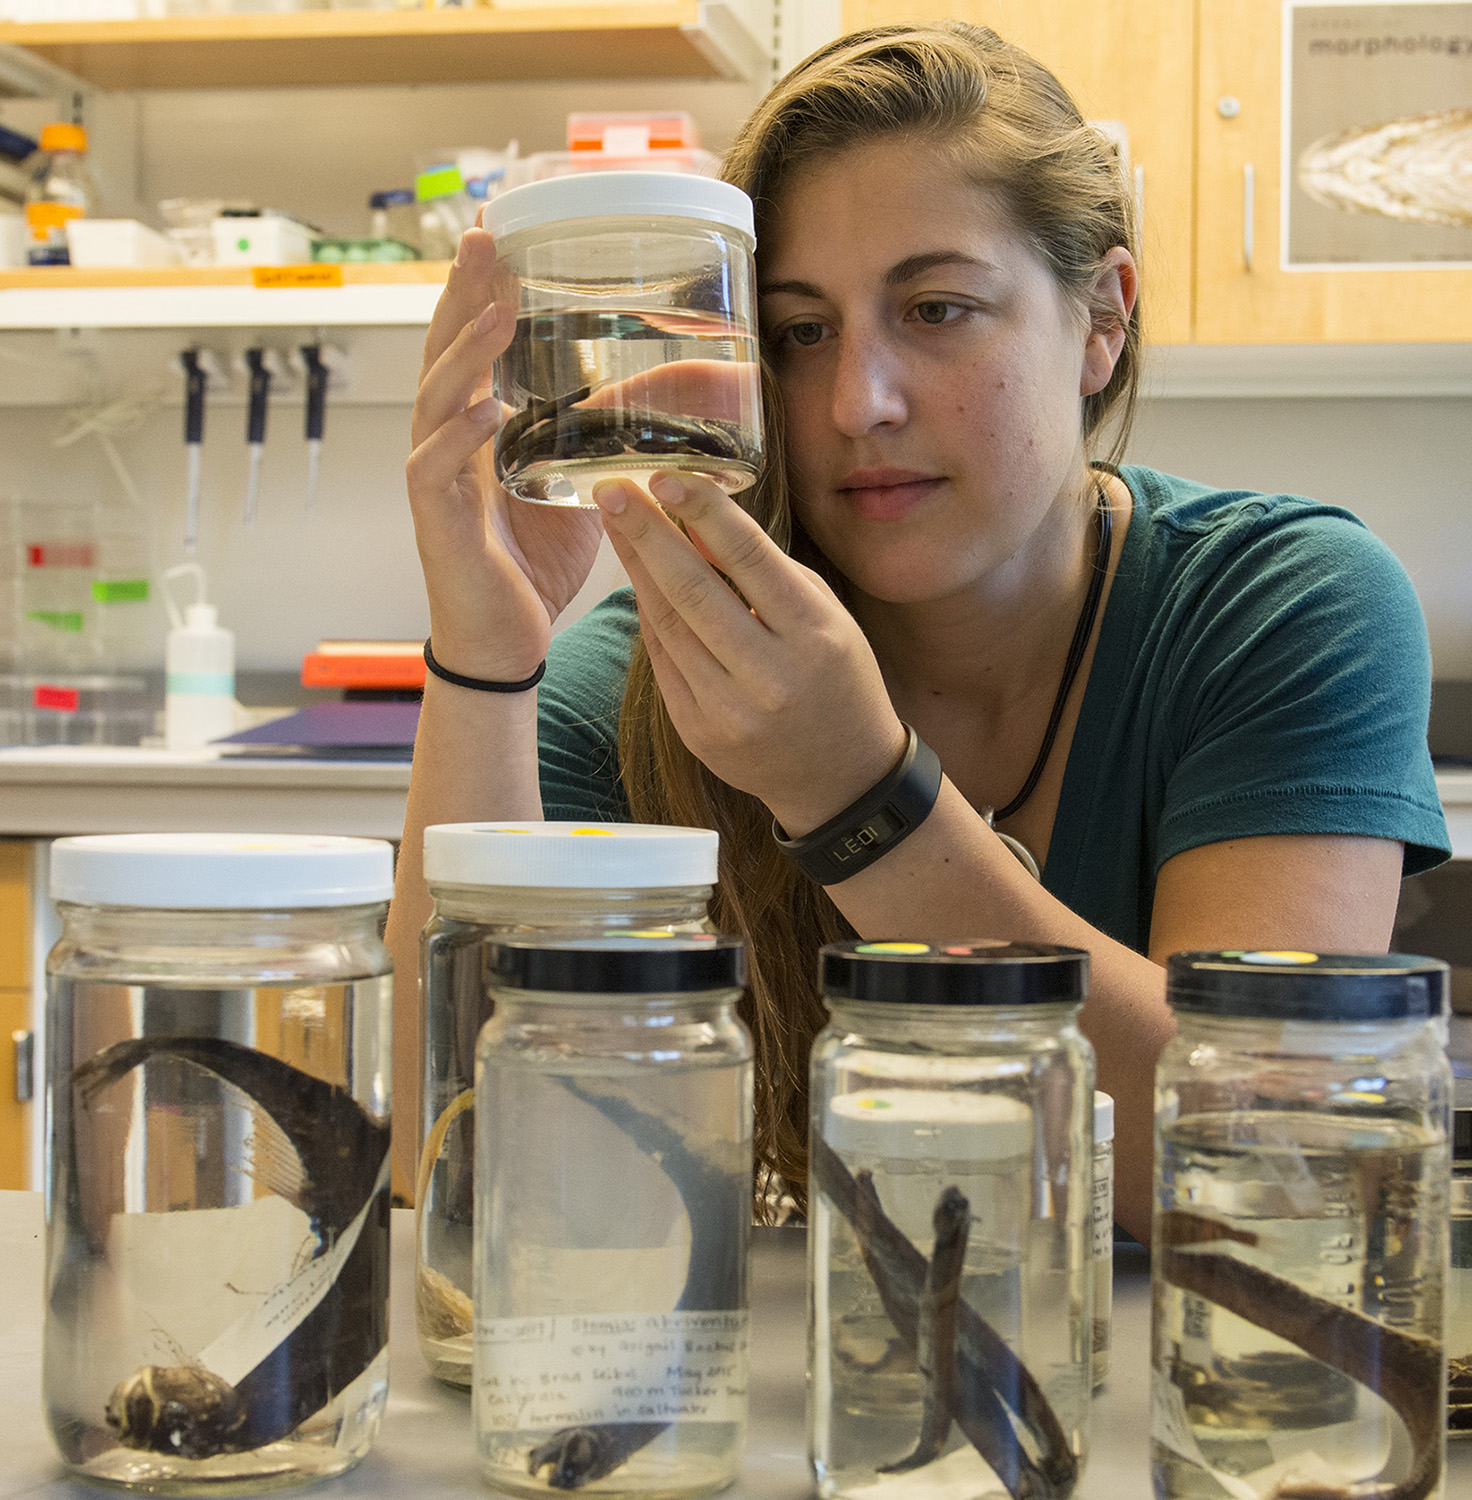 Marranzino examines dragonfish specimens in jars as part of her research on their lateral line sensory system. Photo by Nora Lewis.